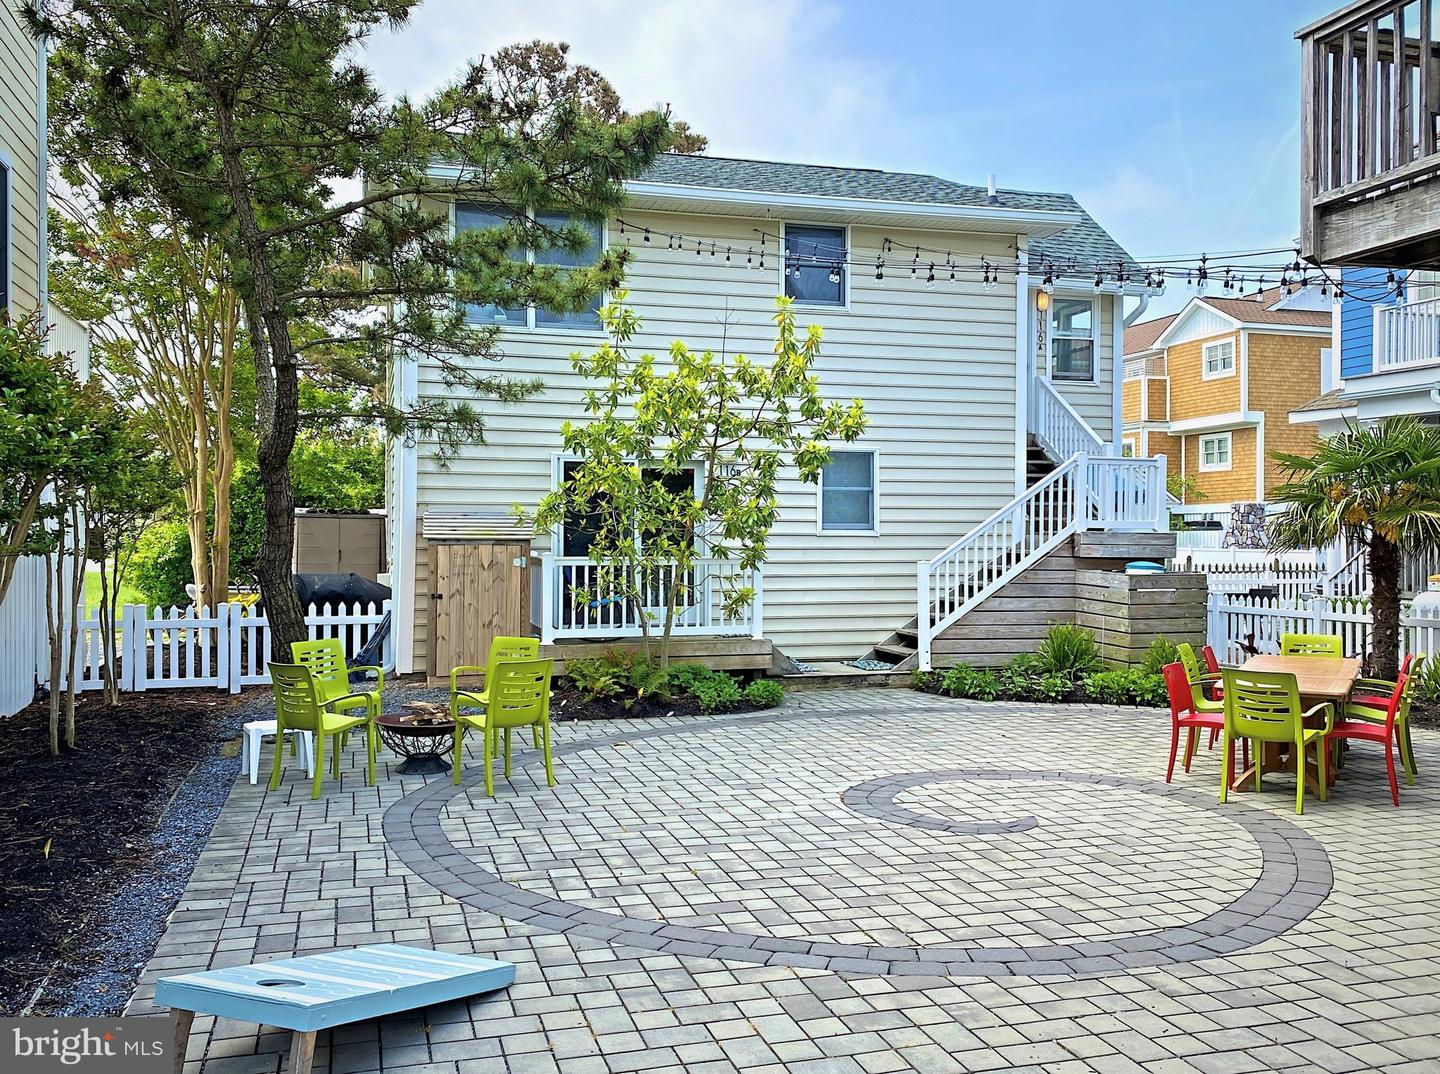 DESU161746-304145717420-2020-05-30-11-15-25 116 Hollywood St | Bethany Beach, DE Real Estate For Sale | MLS# Desu161746  - Ocean Atlantic